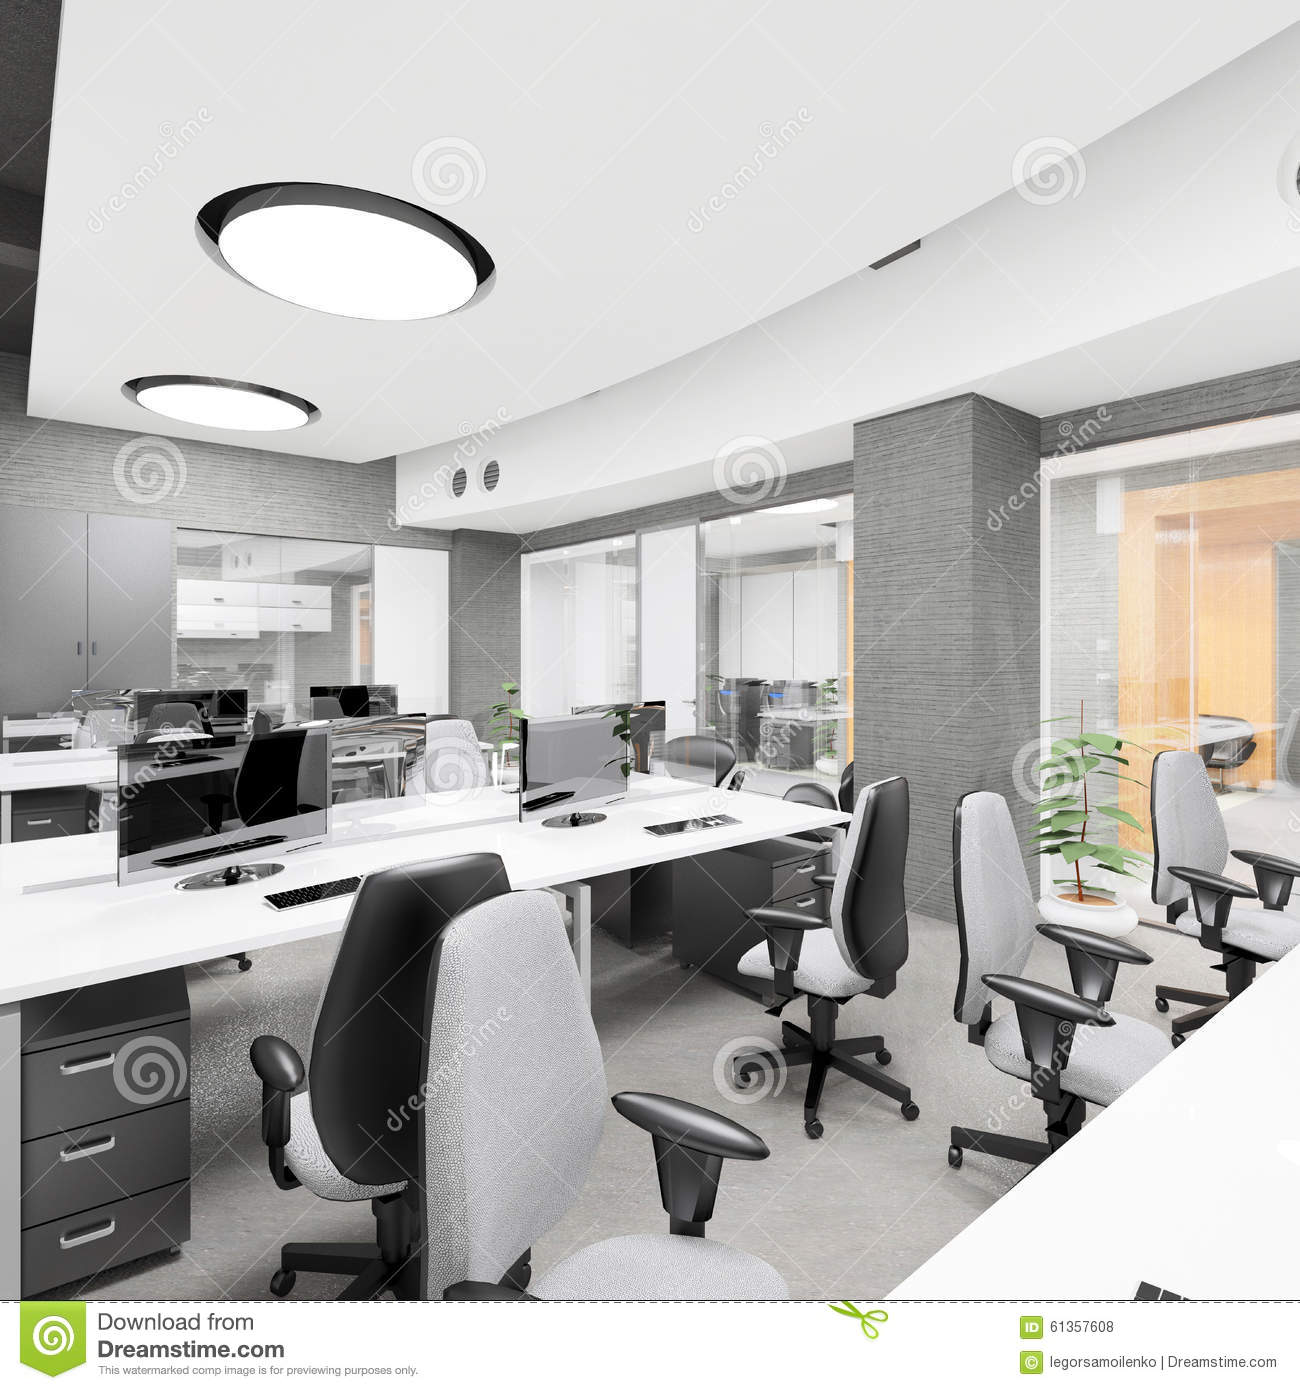 Empty modern office interior work place stock illustration for Office interior work